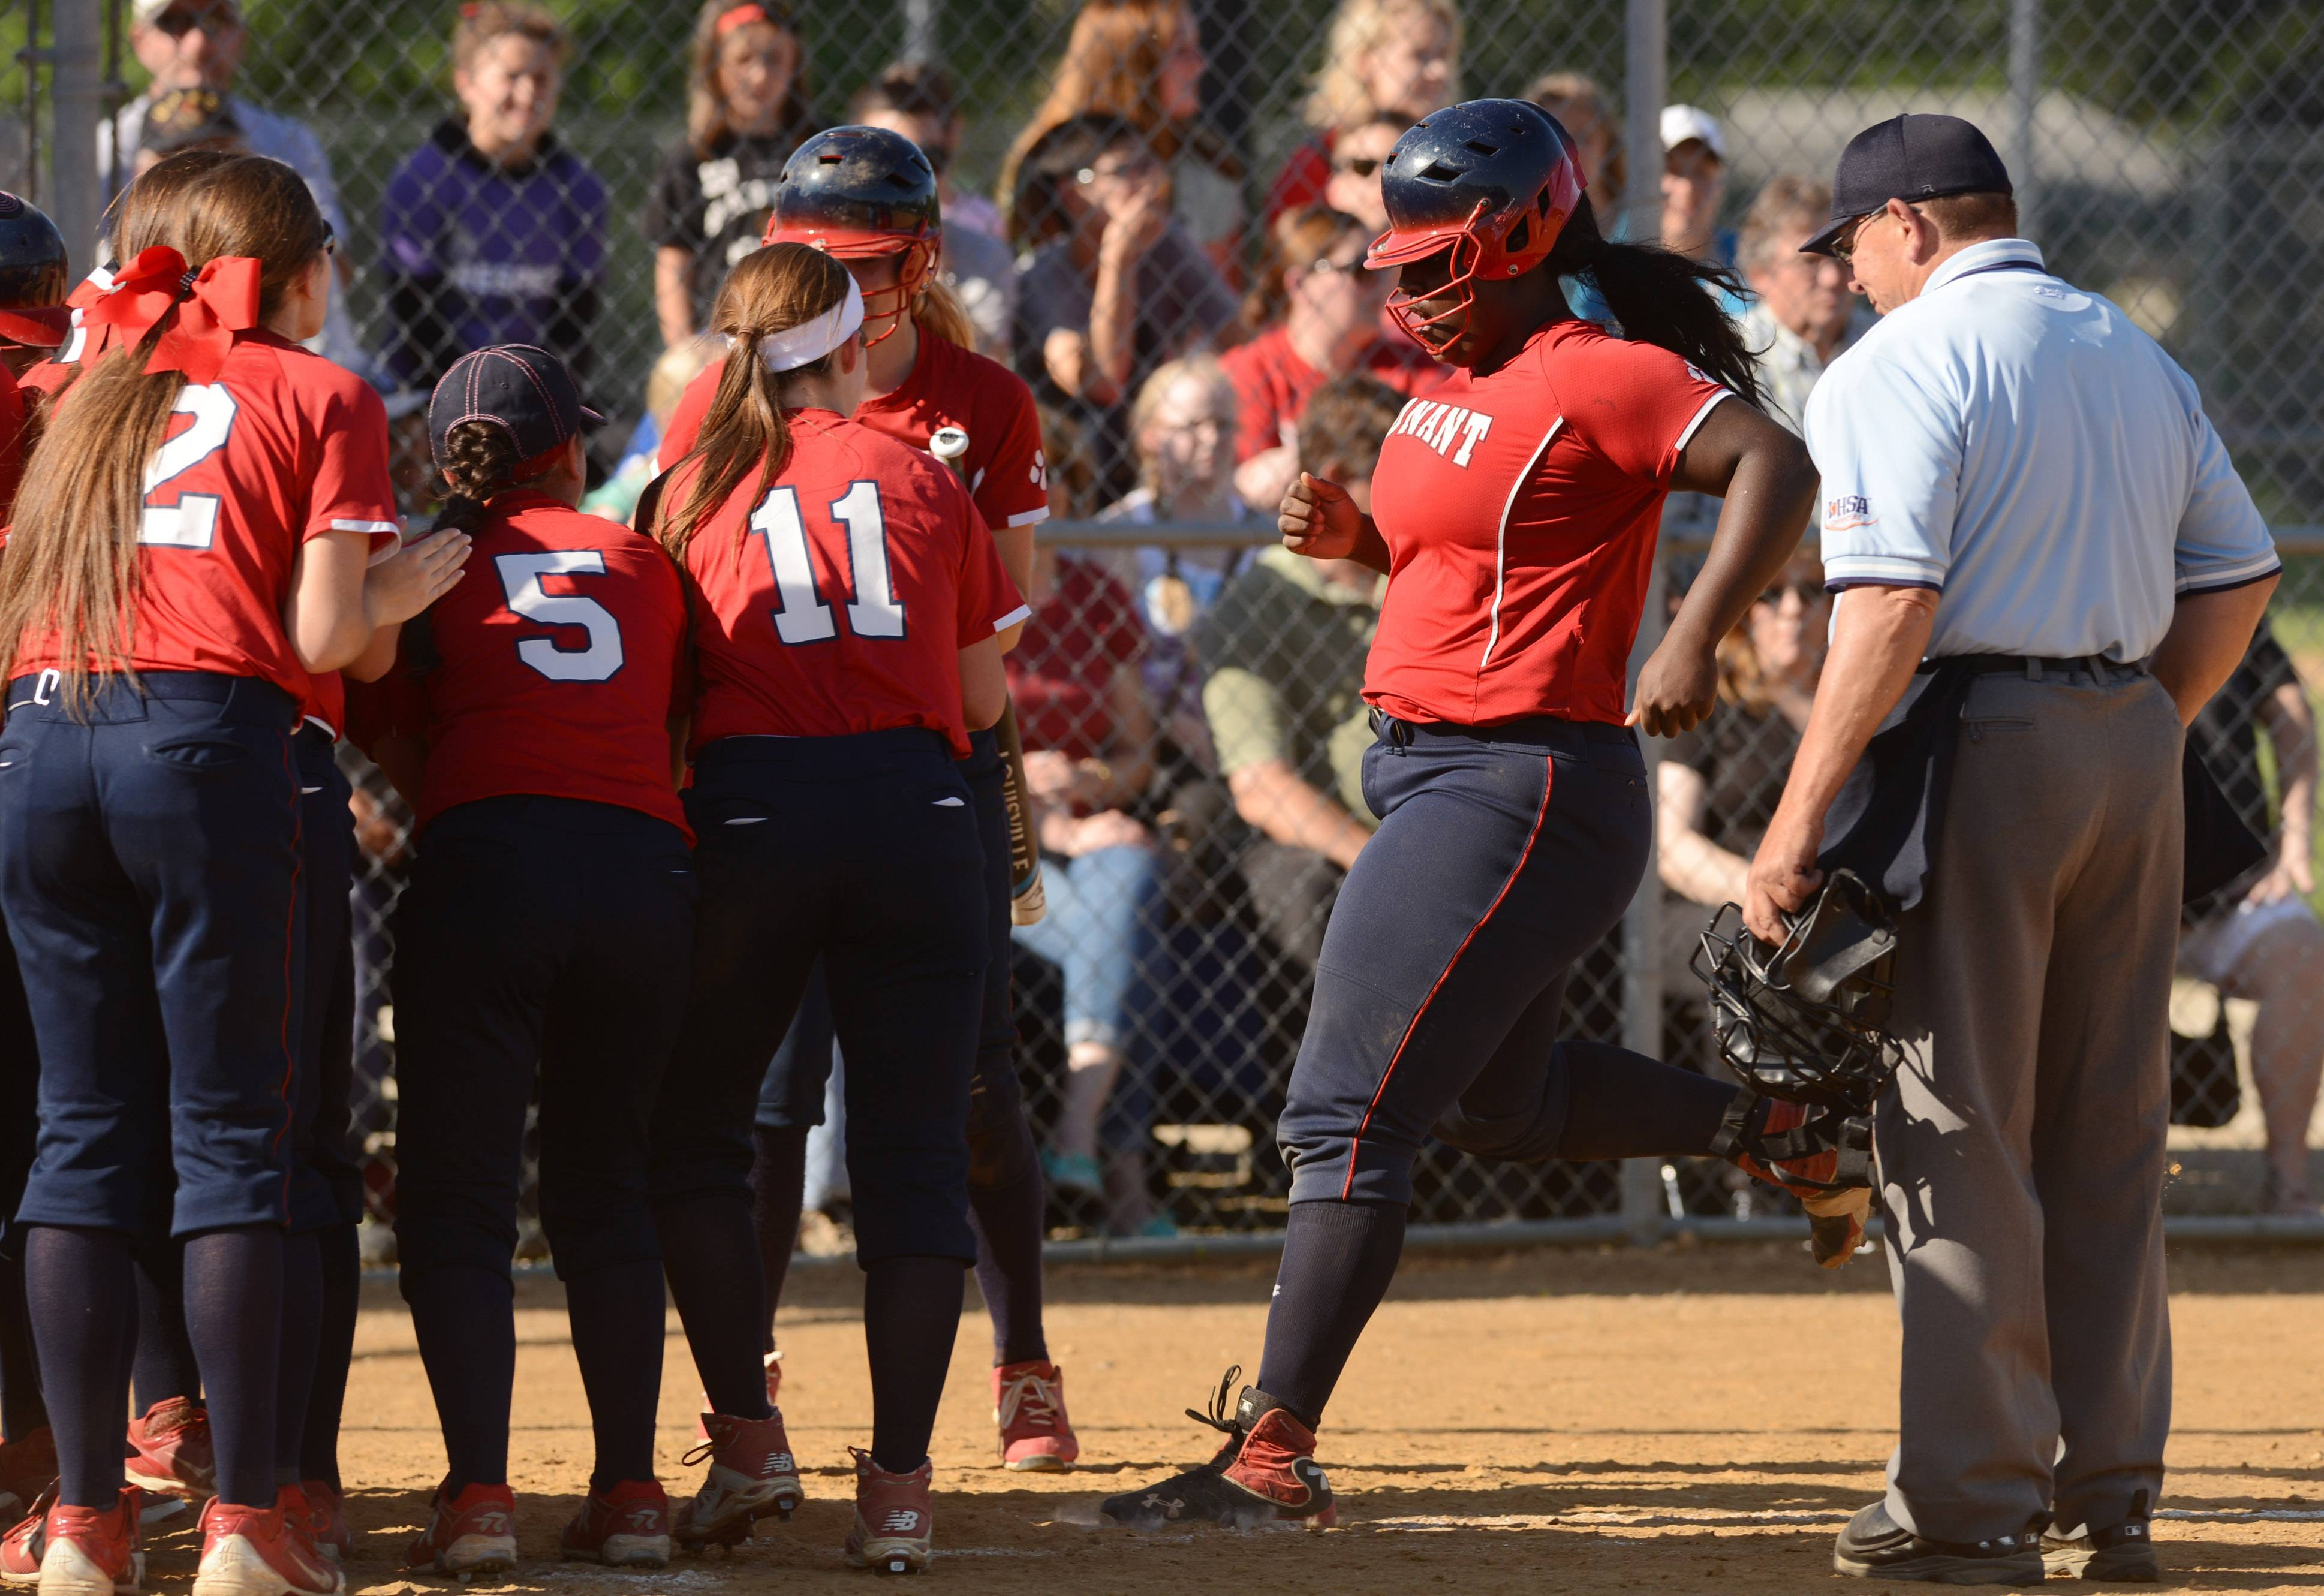 Conant's Dream Aaron, right, is greeted at the plate by her teammates after hitting a home run last season. Despite adversity including homelessness and her mother's imprisonment, Dream has earned a full scholarship to college.